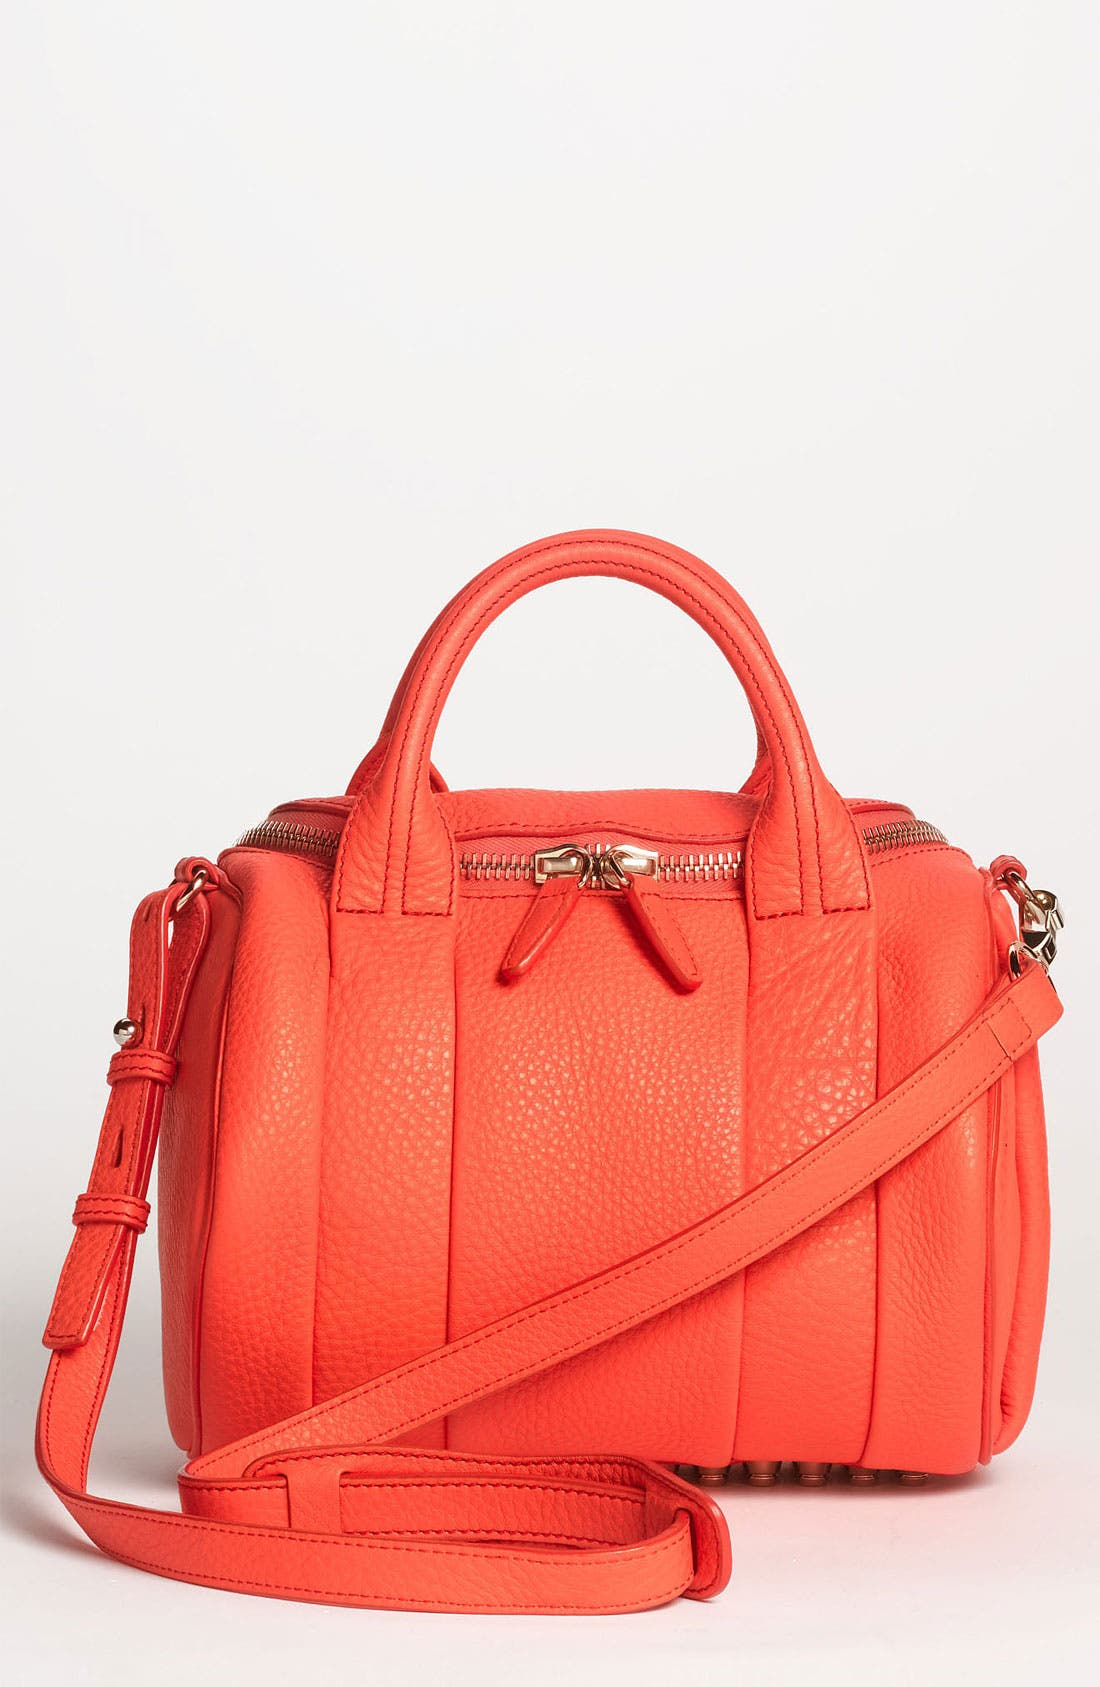 Main Image - Alexander Wang 'Rockie' Leather Satchel